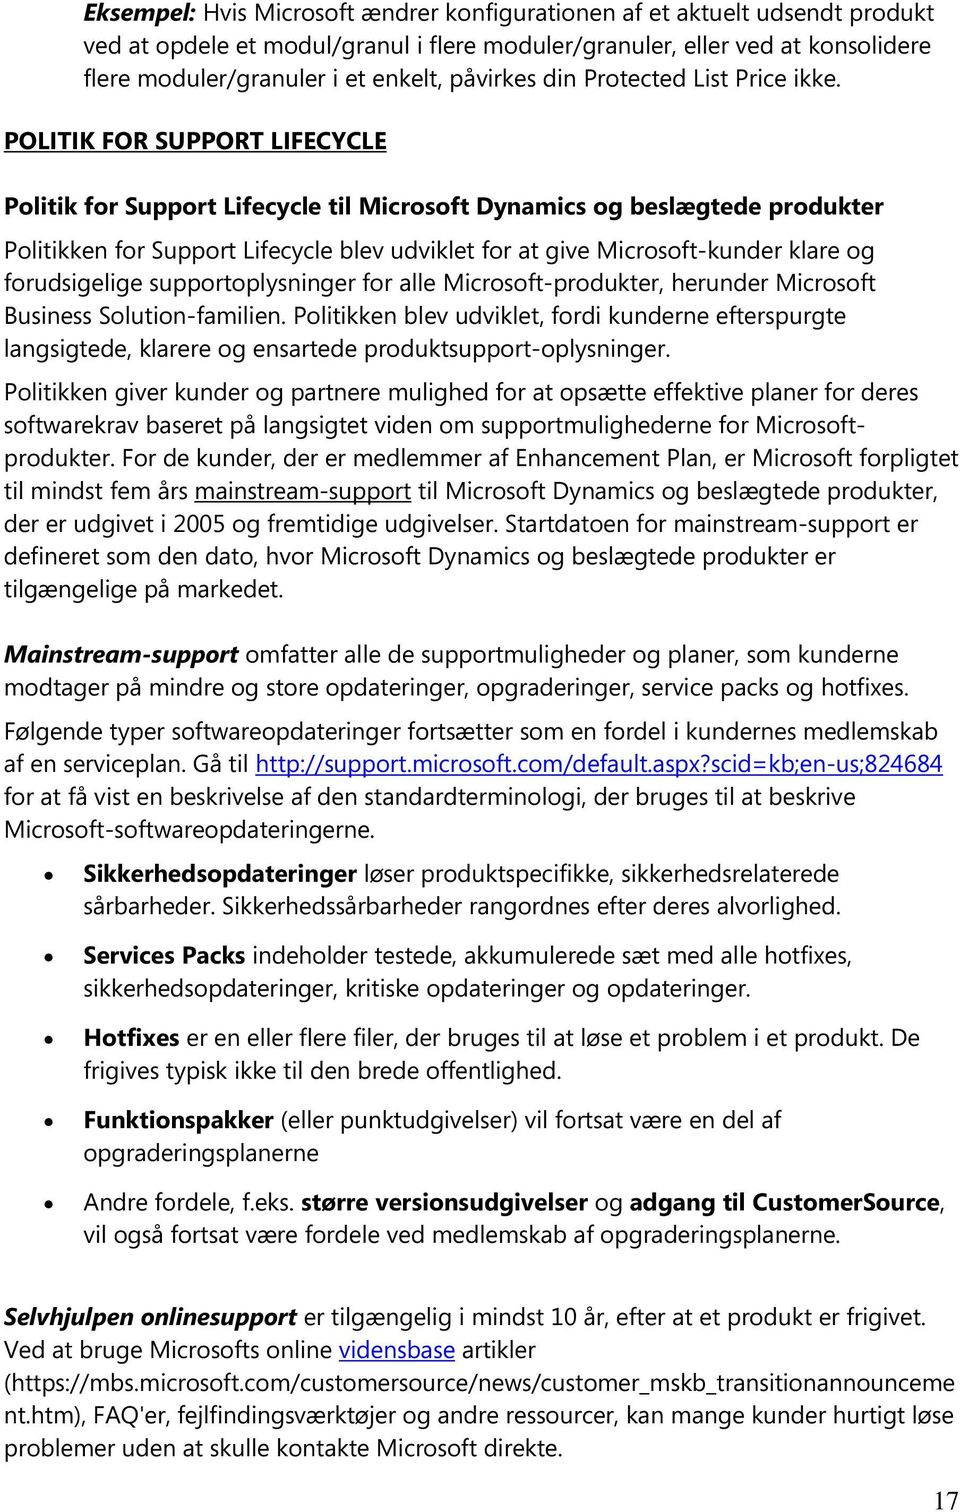 POLITIK FOR SUPPORT LIFECYCLE Politik for Support Lifecycle til Microsoft Dynamics og beslægtede produkter Politikken for Support Lifecycle blev udviklet for at give Microsoft-kunder klare og